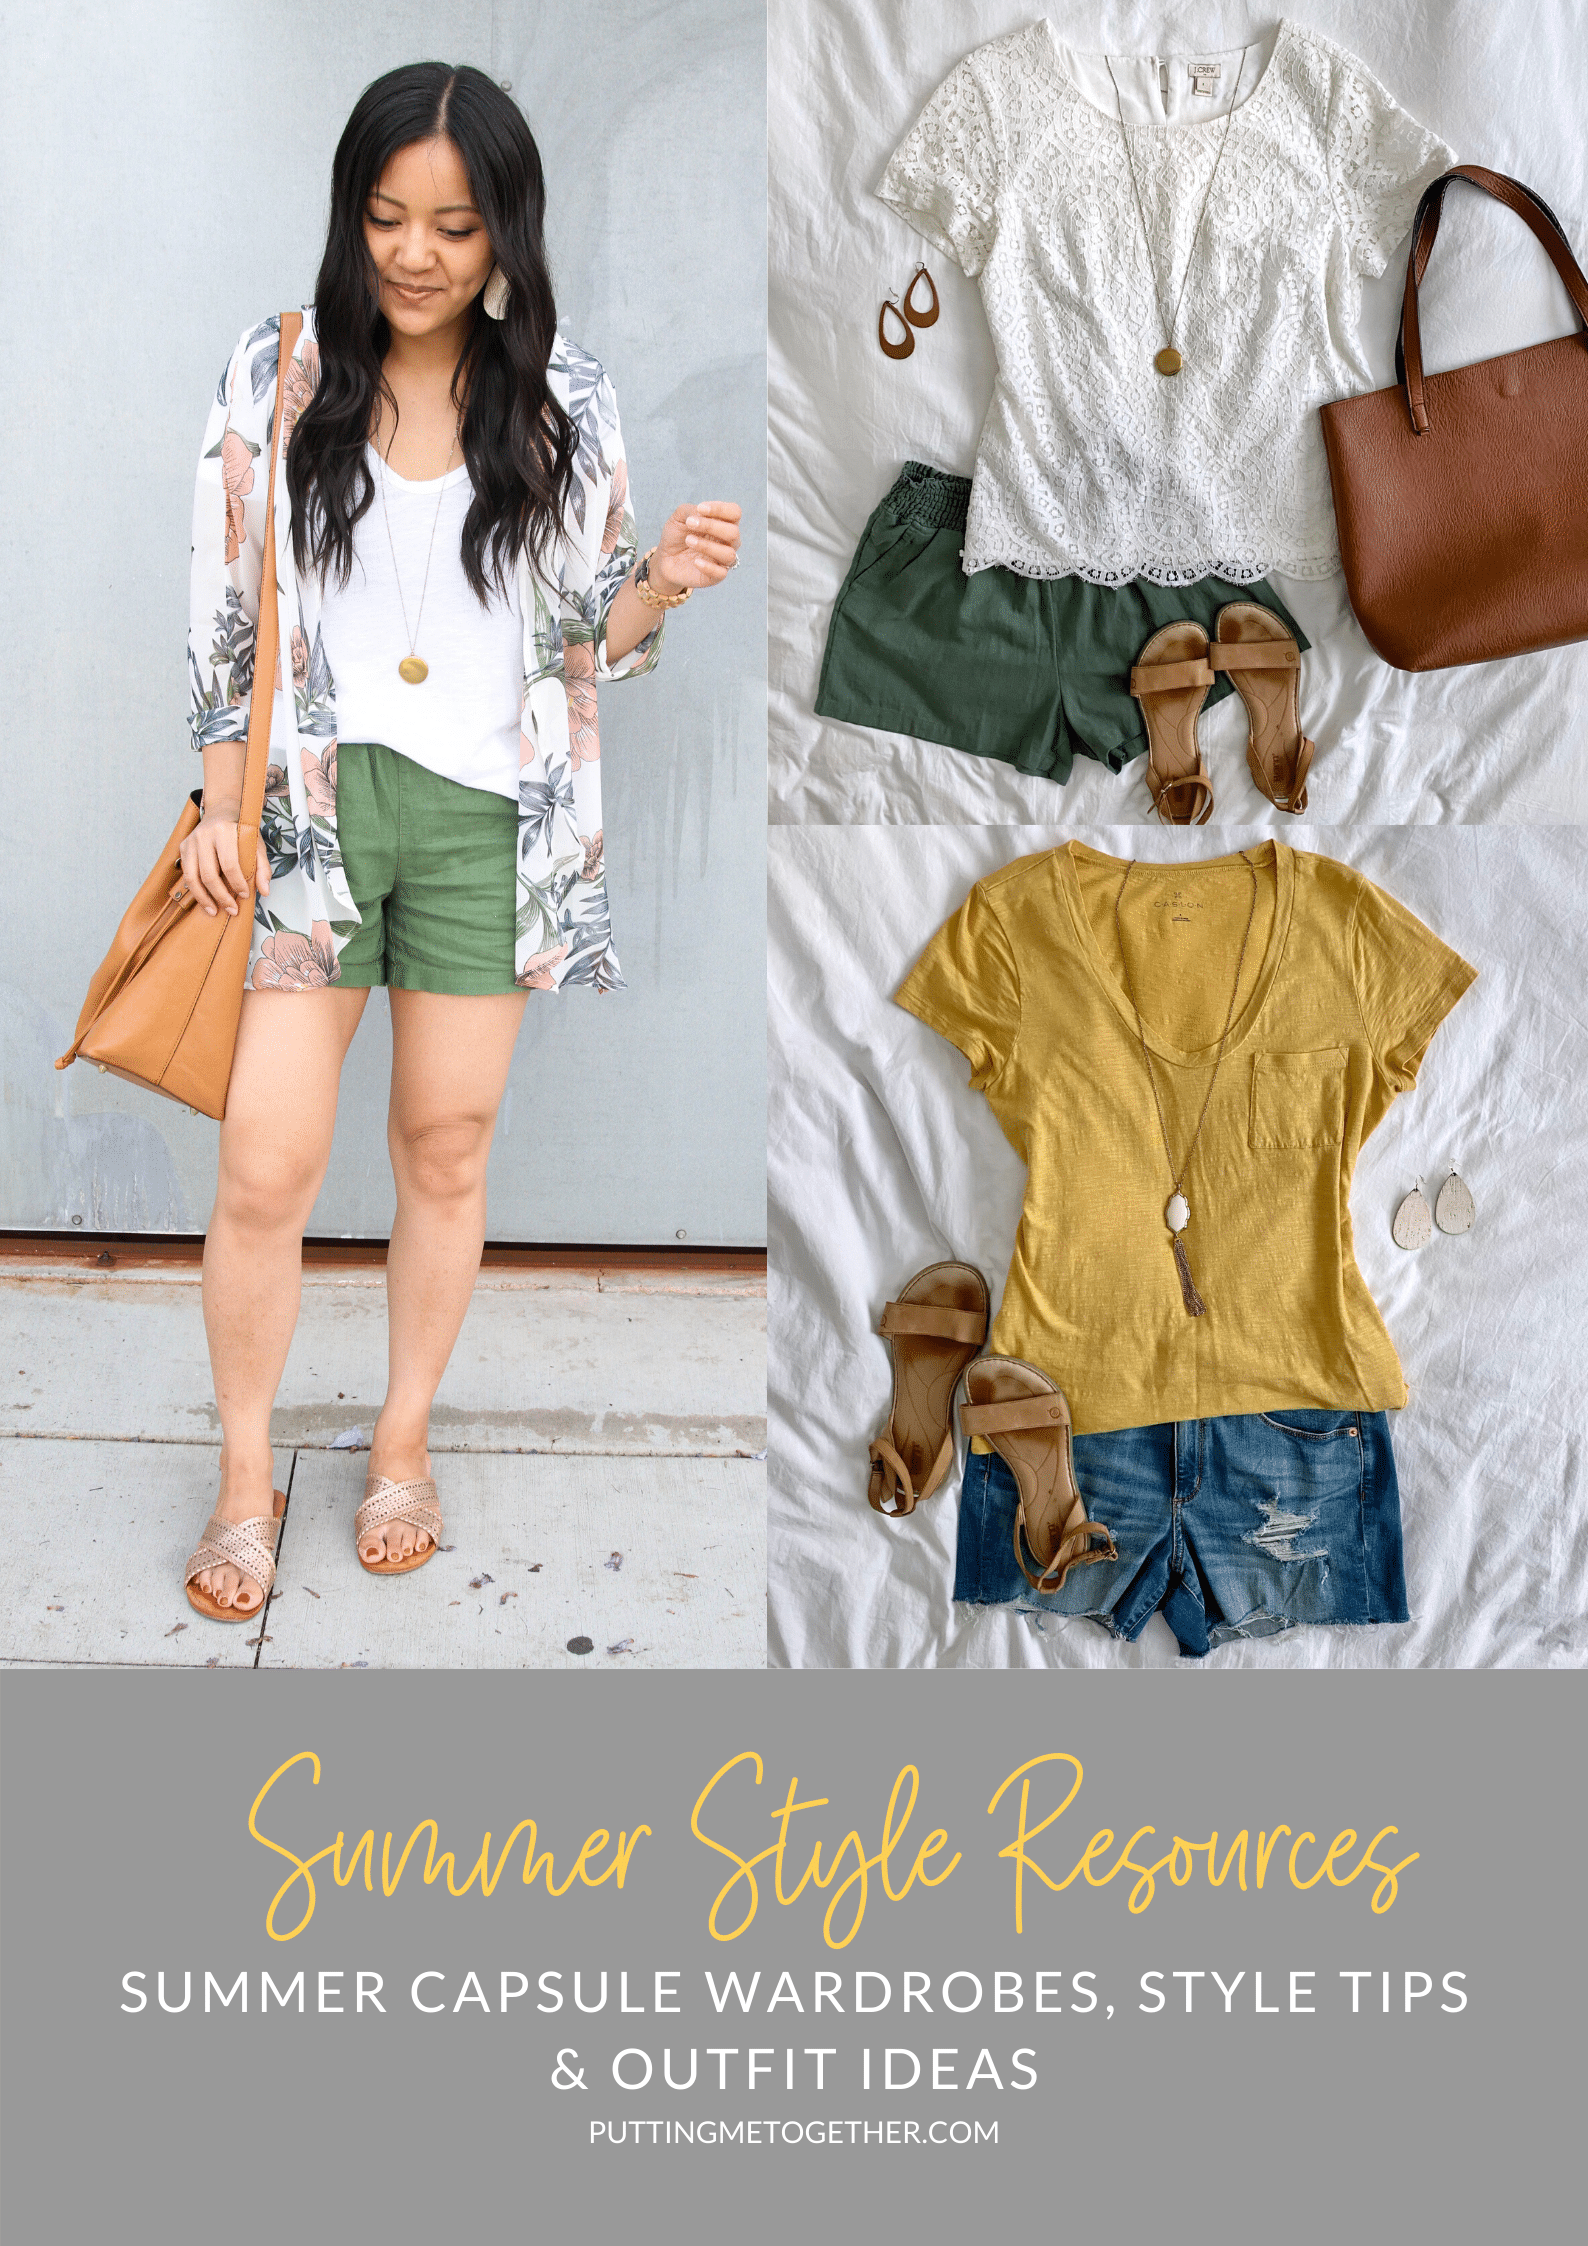 Summer Style Resources, Summer Capsule Wardrobes, Style Tips and Outfit Ideas